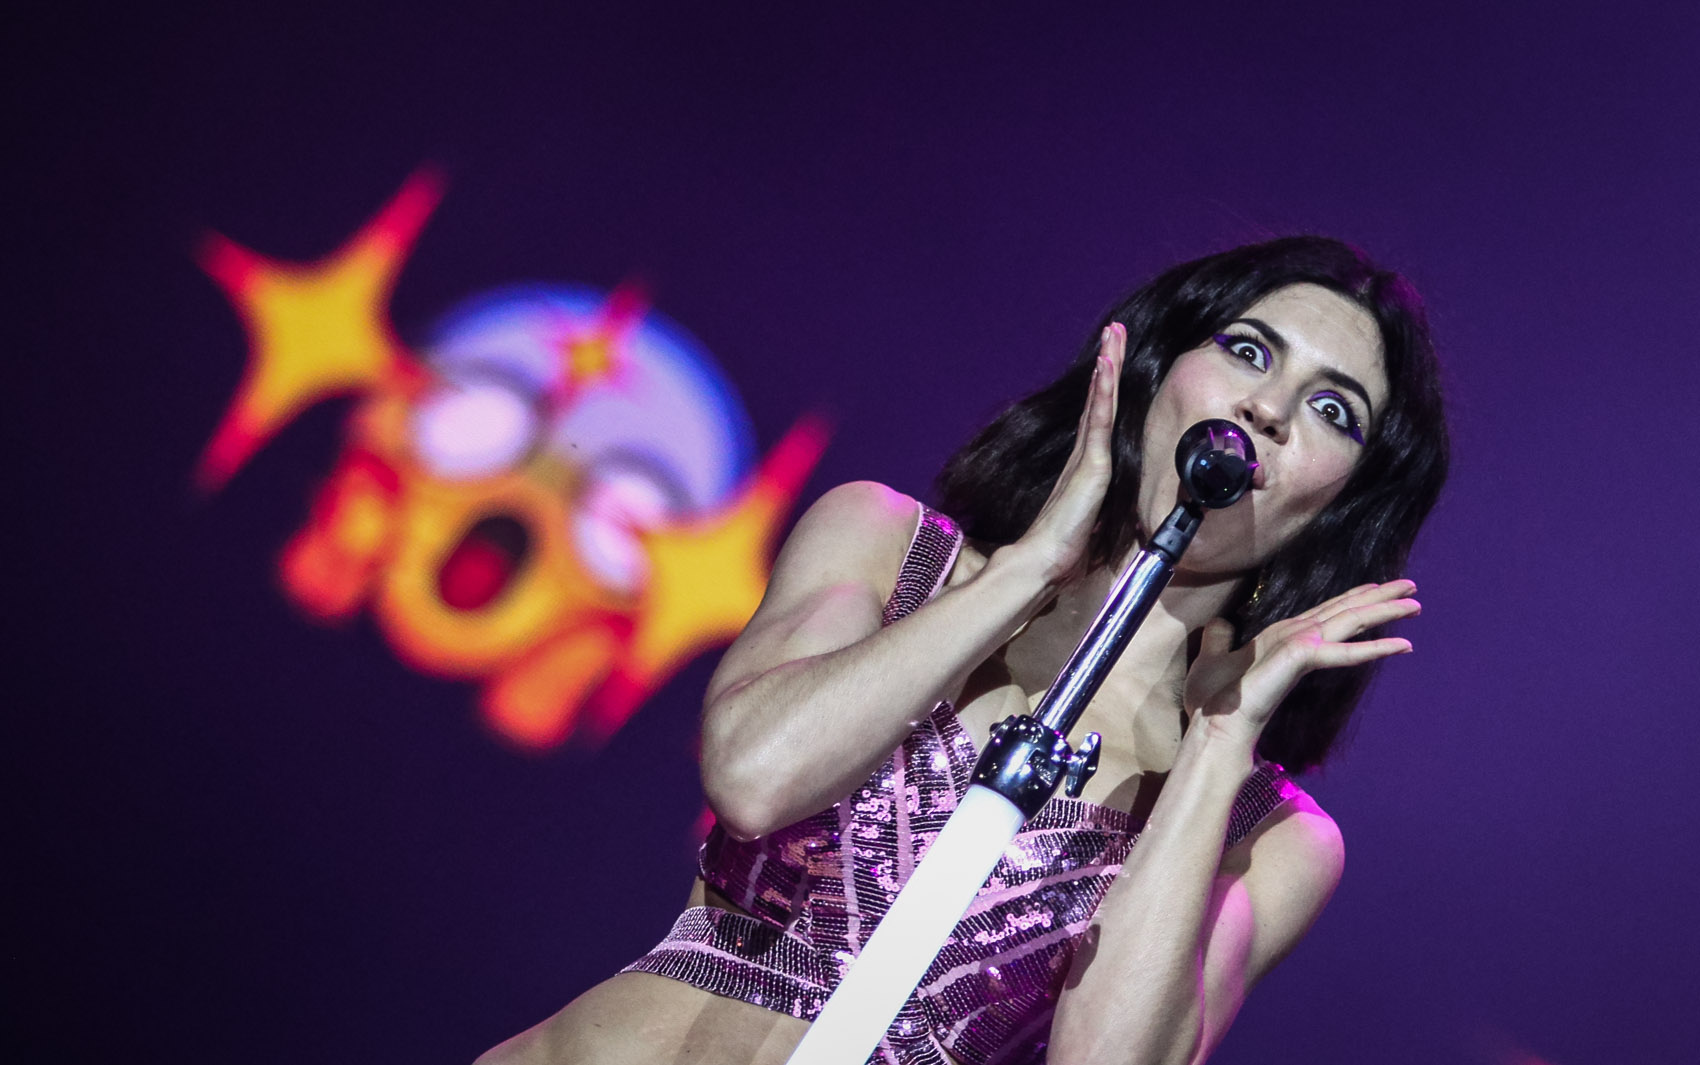 Marina and the Diamonds se apresenta no palco Axe do Lollapalooza 2016